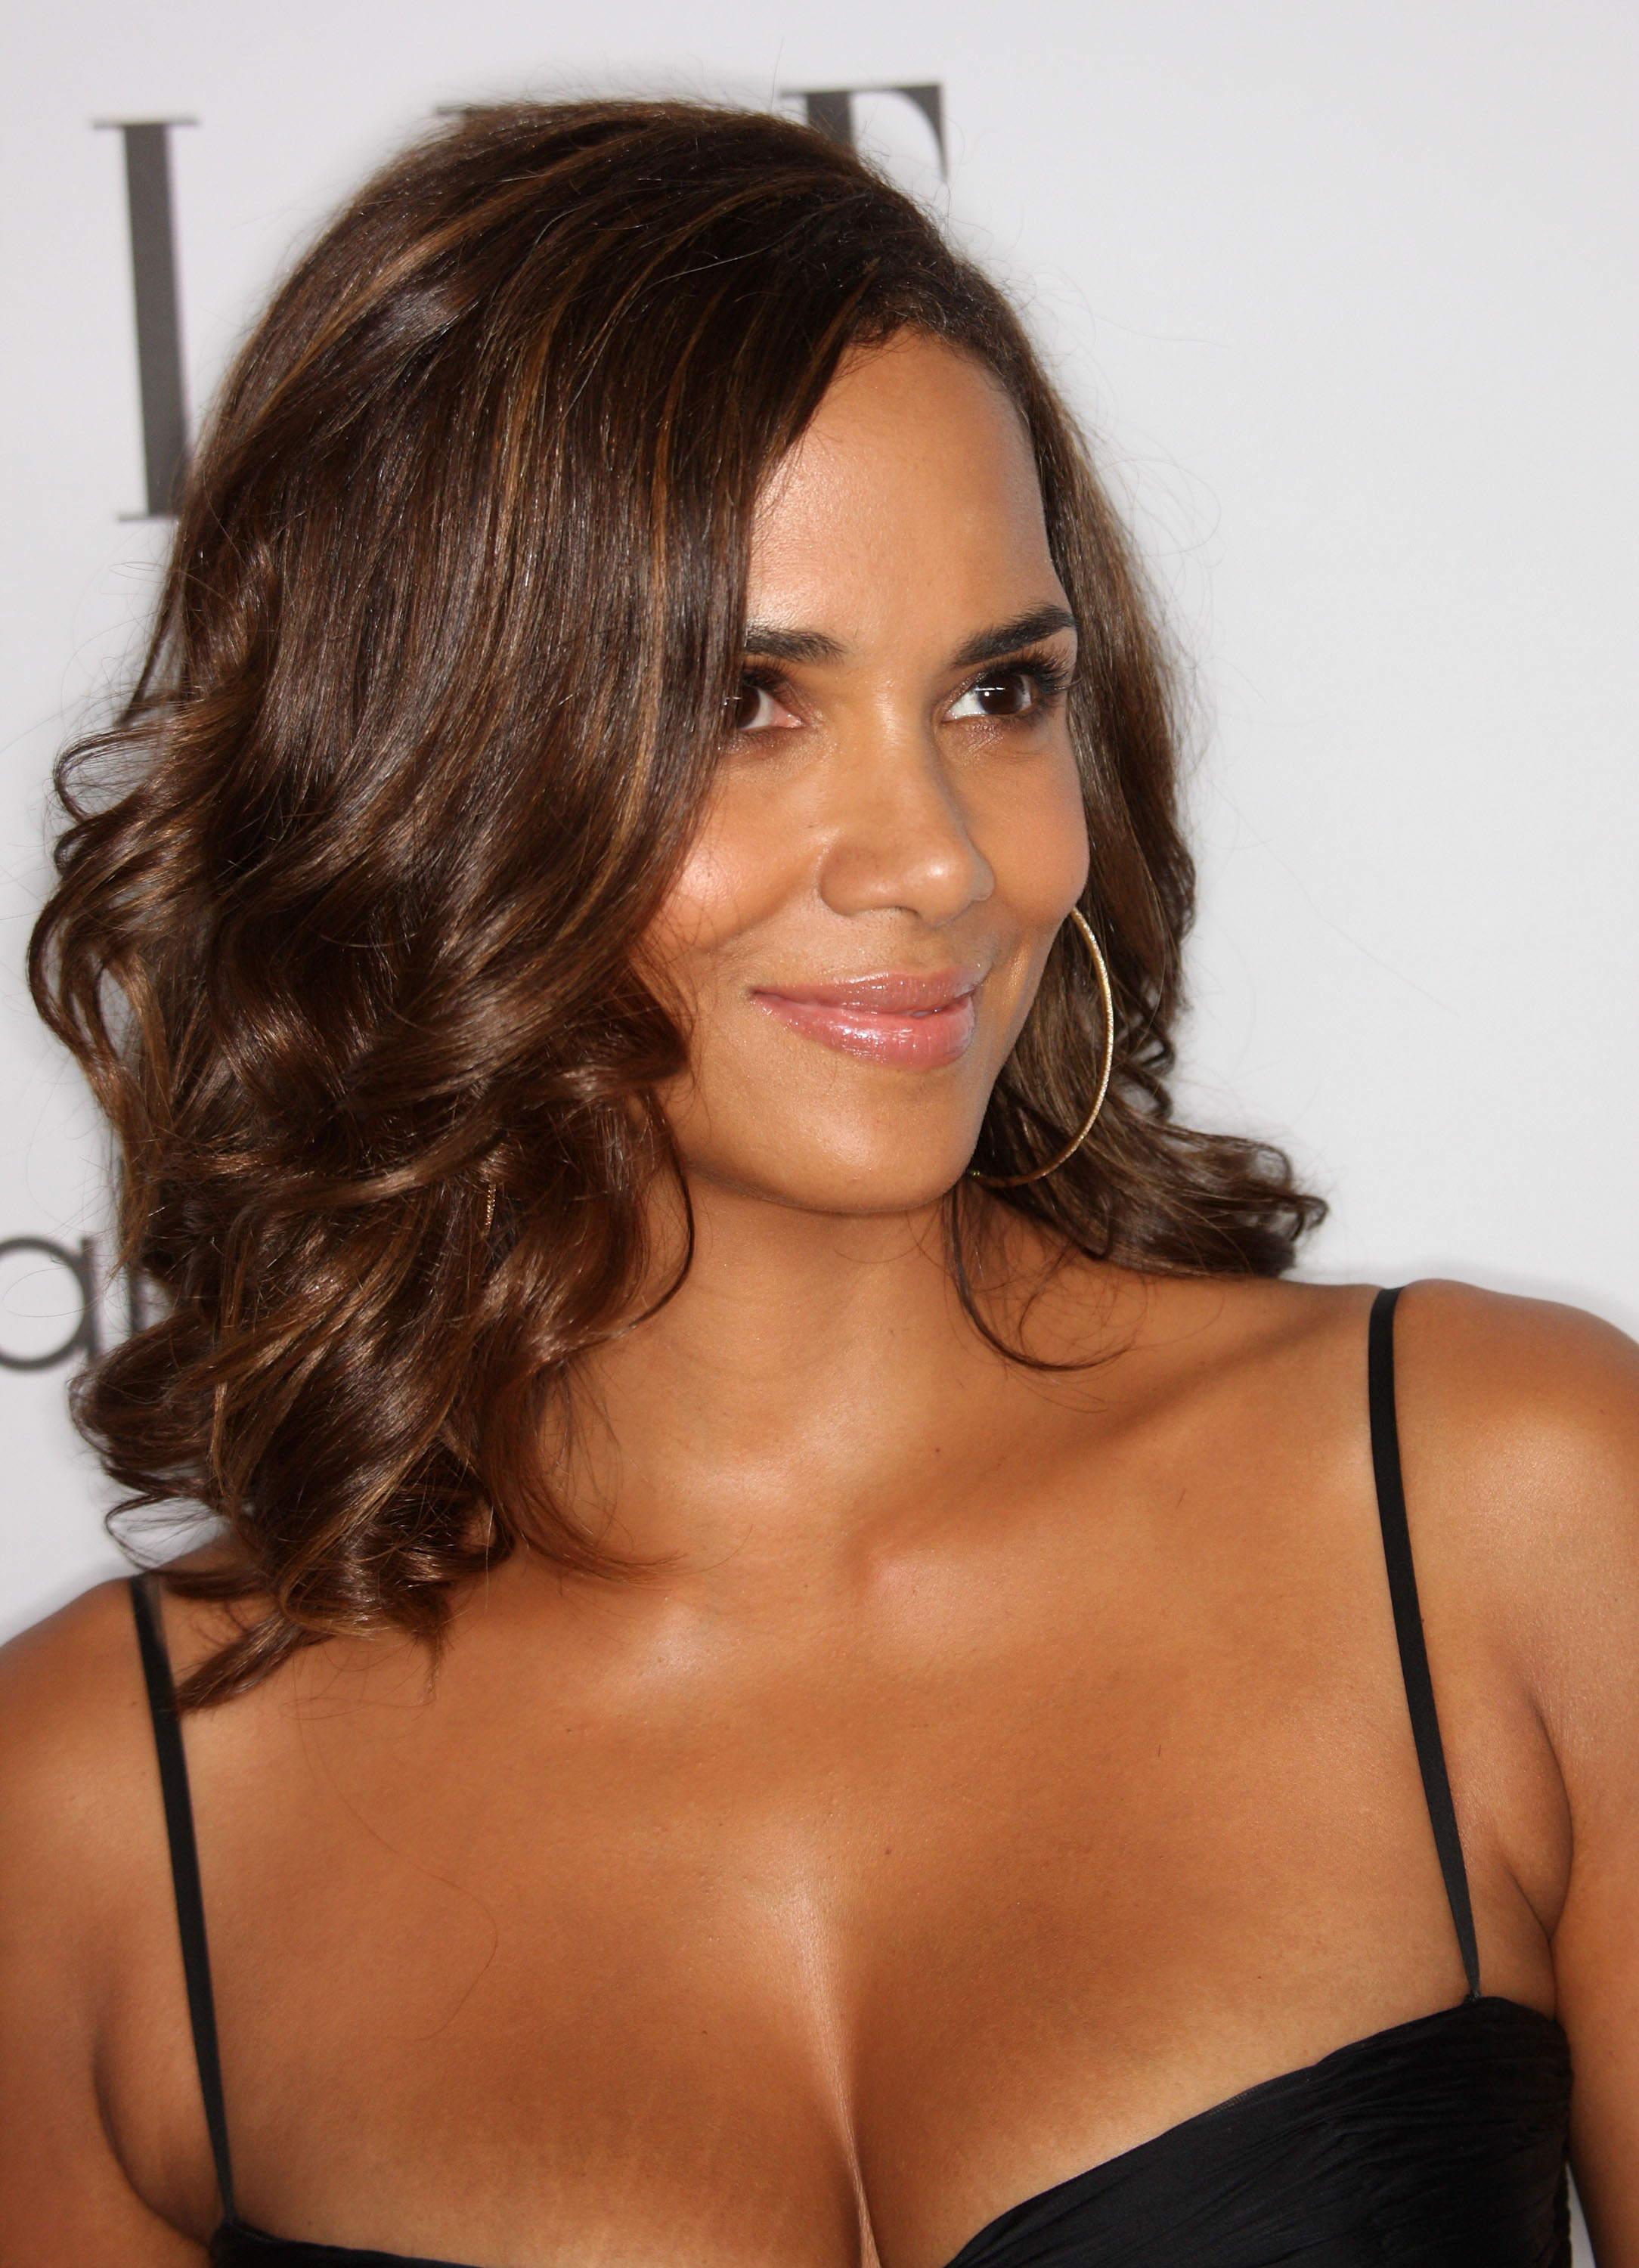 59309_Celebutopia-Halle_Berry-15th_annual_Women_In_Hollywood_Tribute-11_122_1091lo.jpg